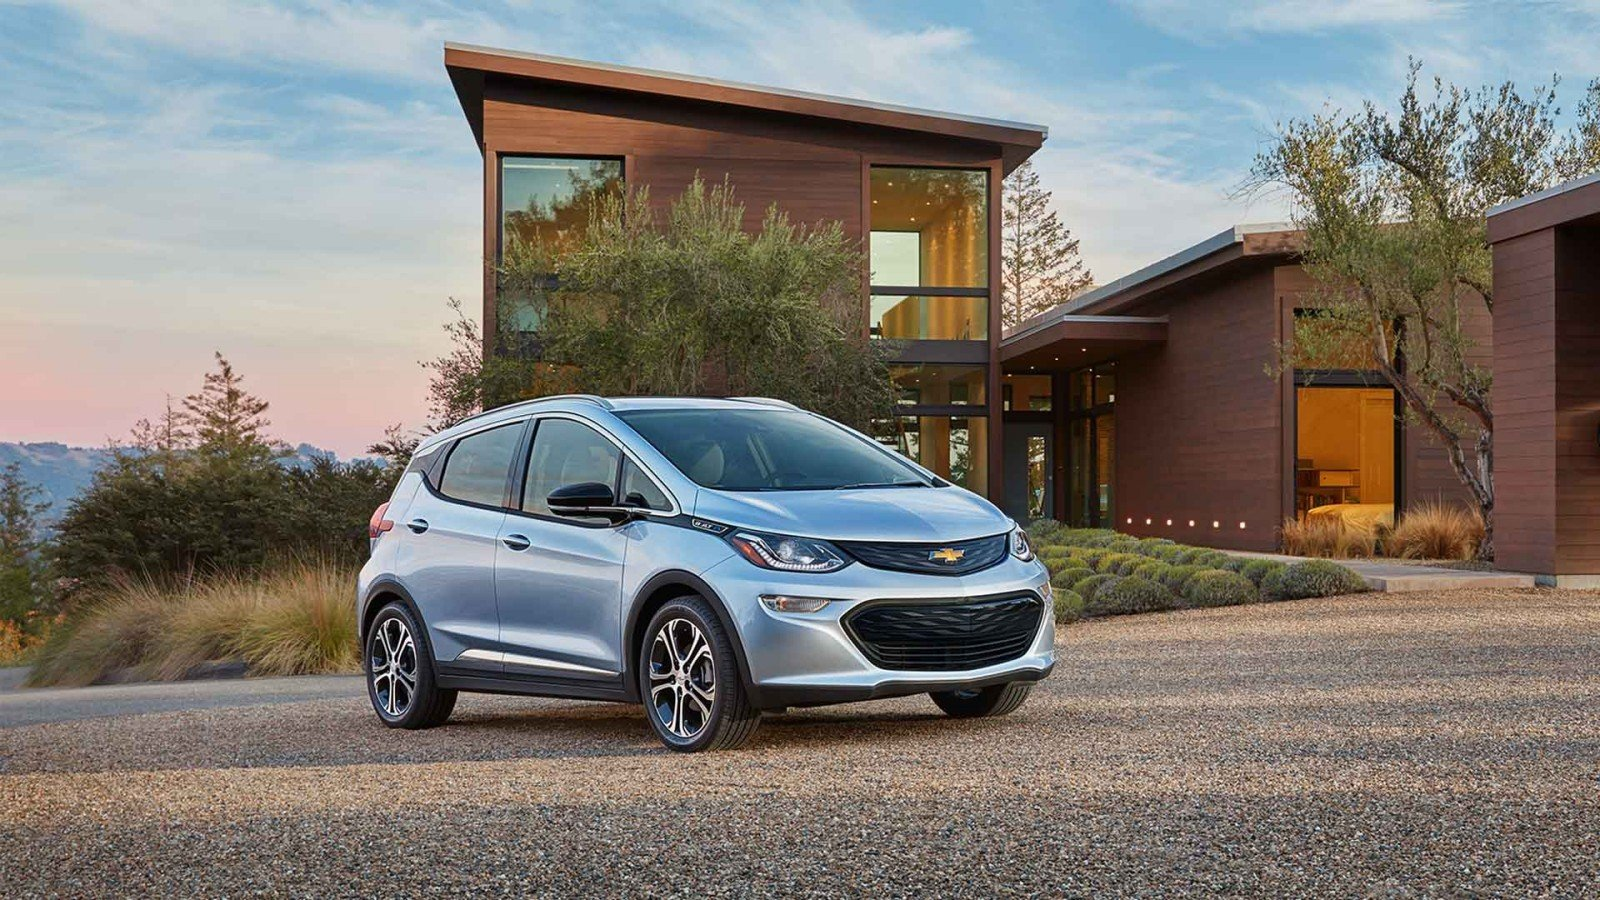 home diesel mpg topping news offers expected media chevrolet pages us aug detail en hwy equinox segment content